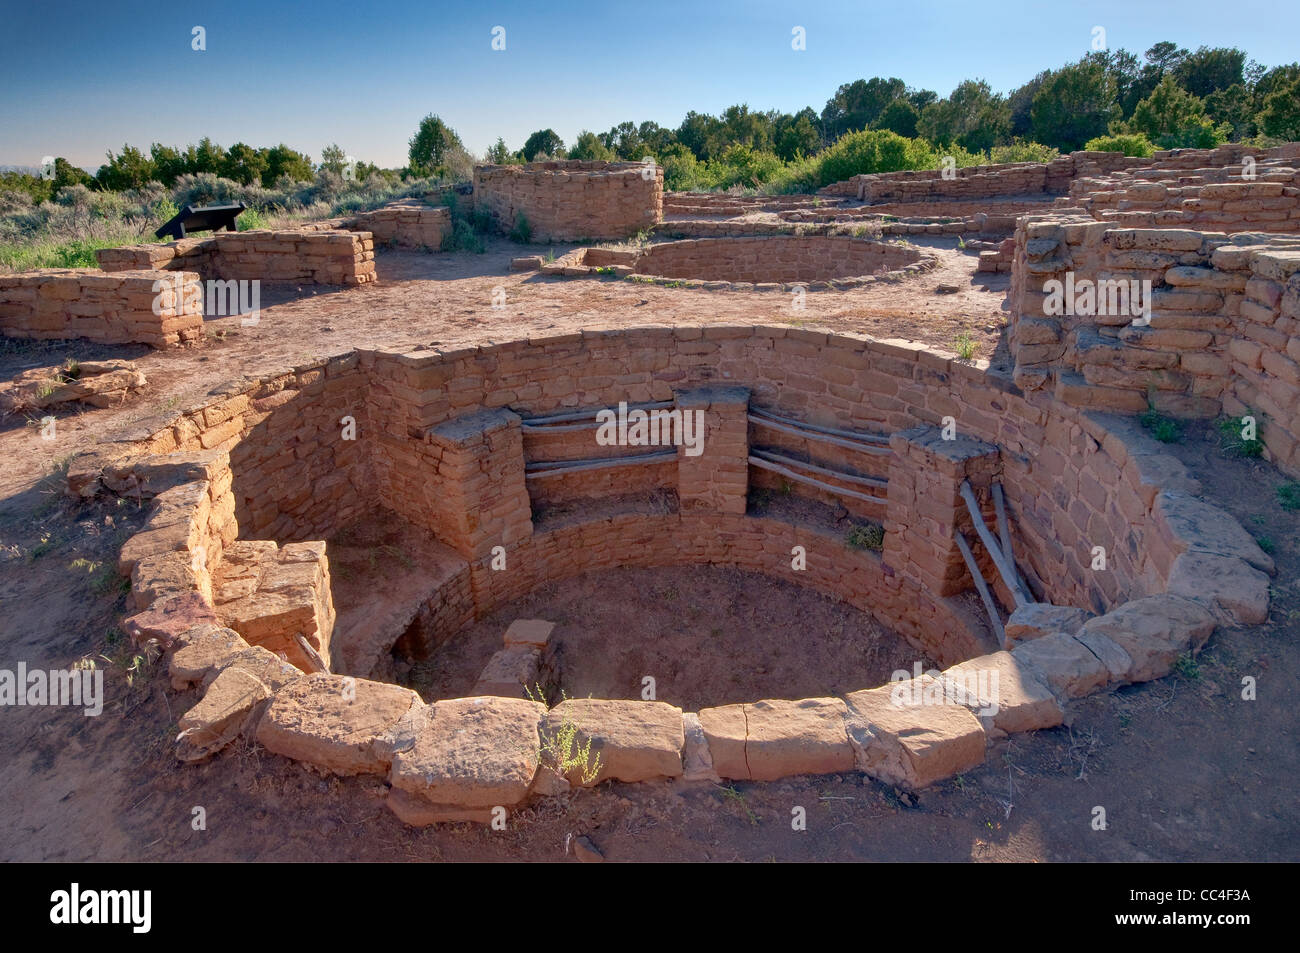 Kiva (ceremonial chamber) at Coyote Village, Far View Sites Complex, Mesa Verde National Park, Colorado, USA - Stock Image